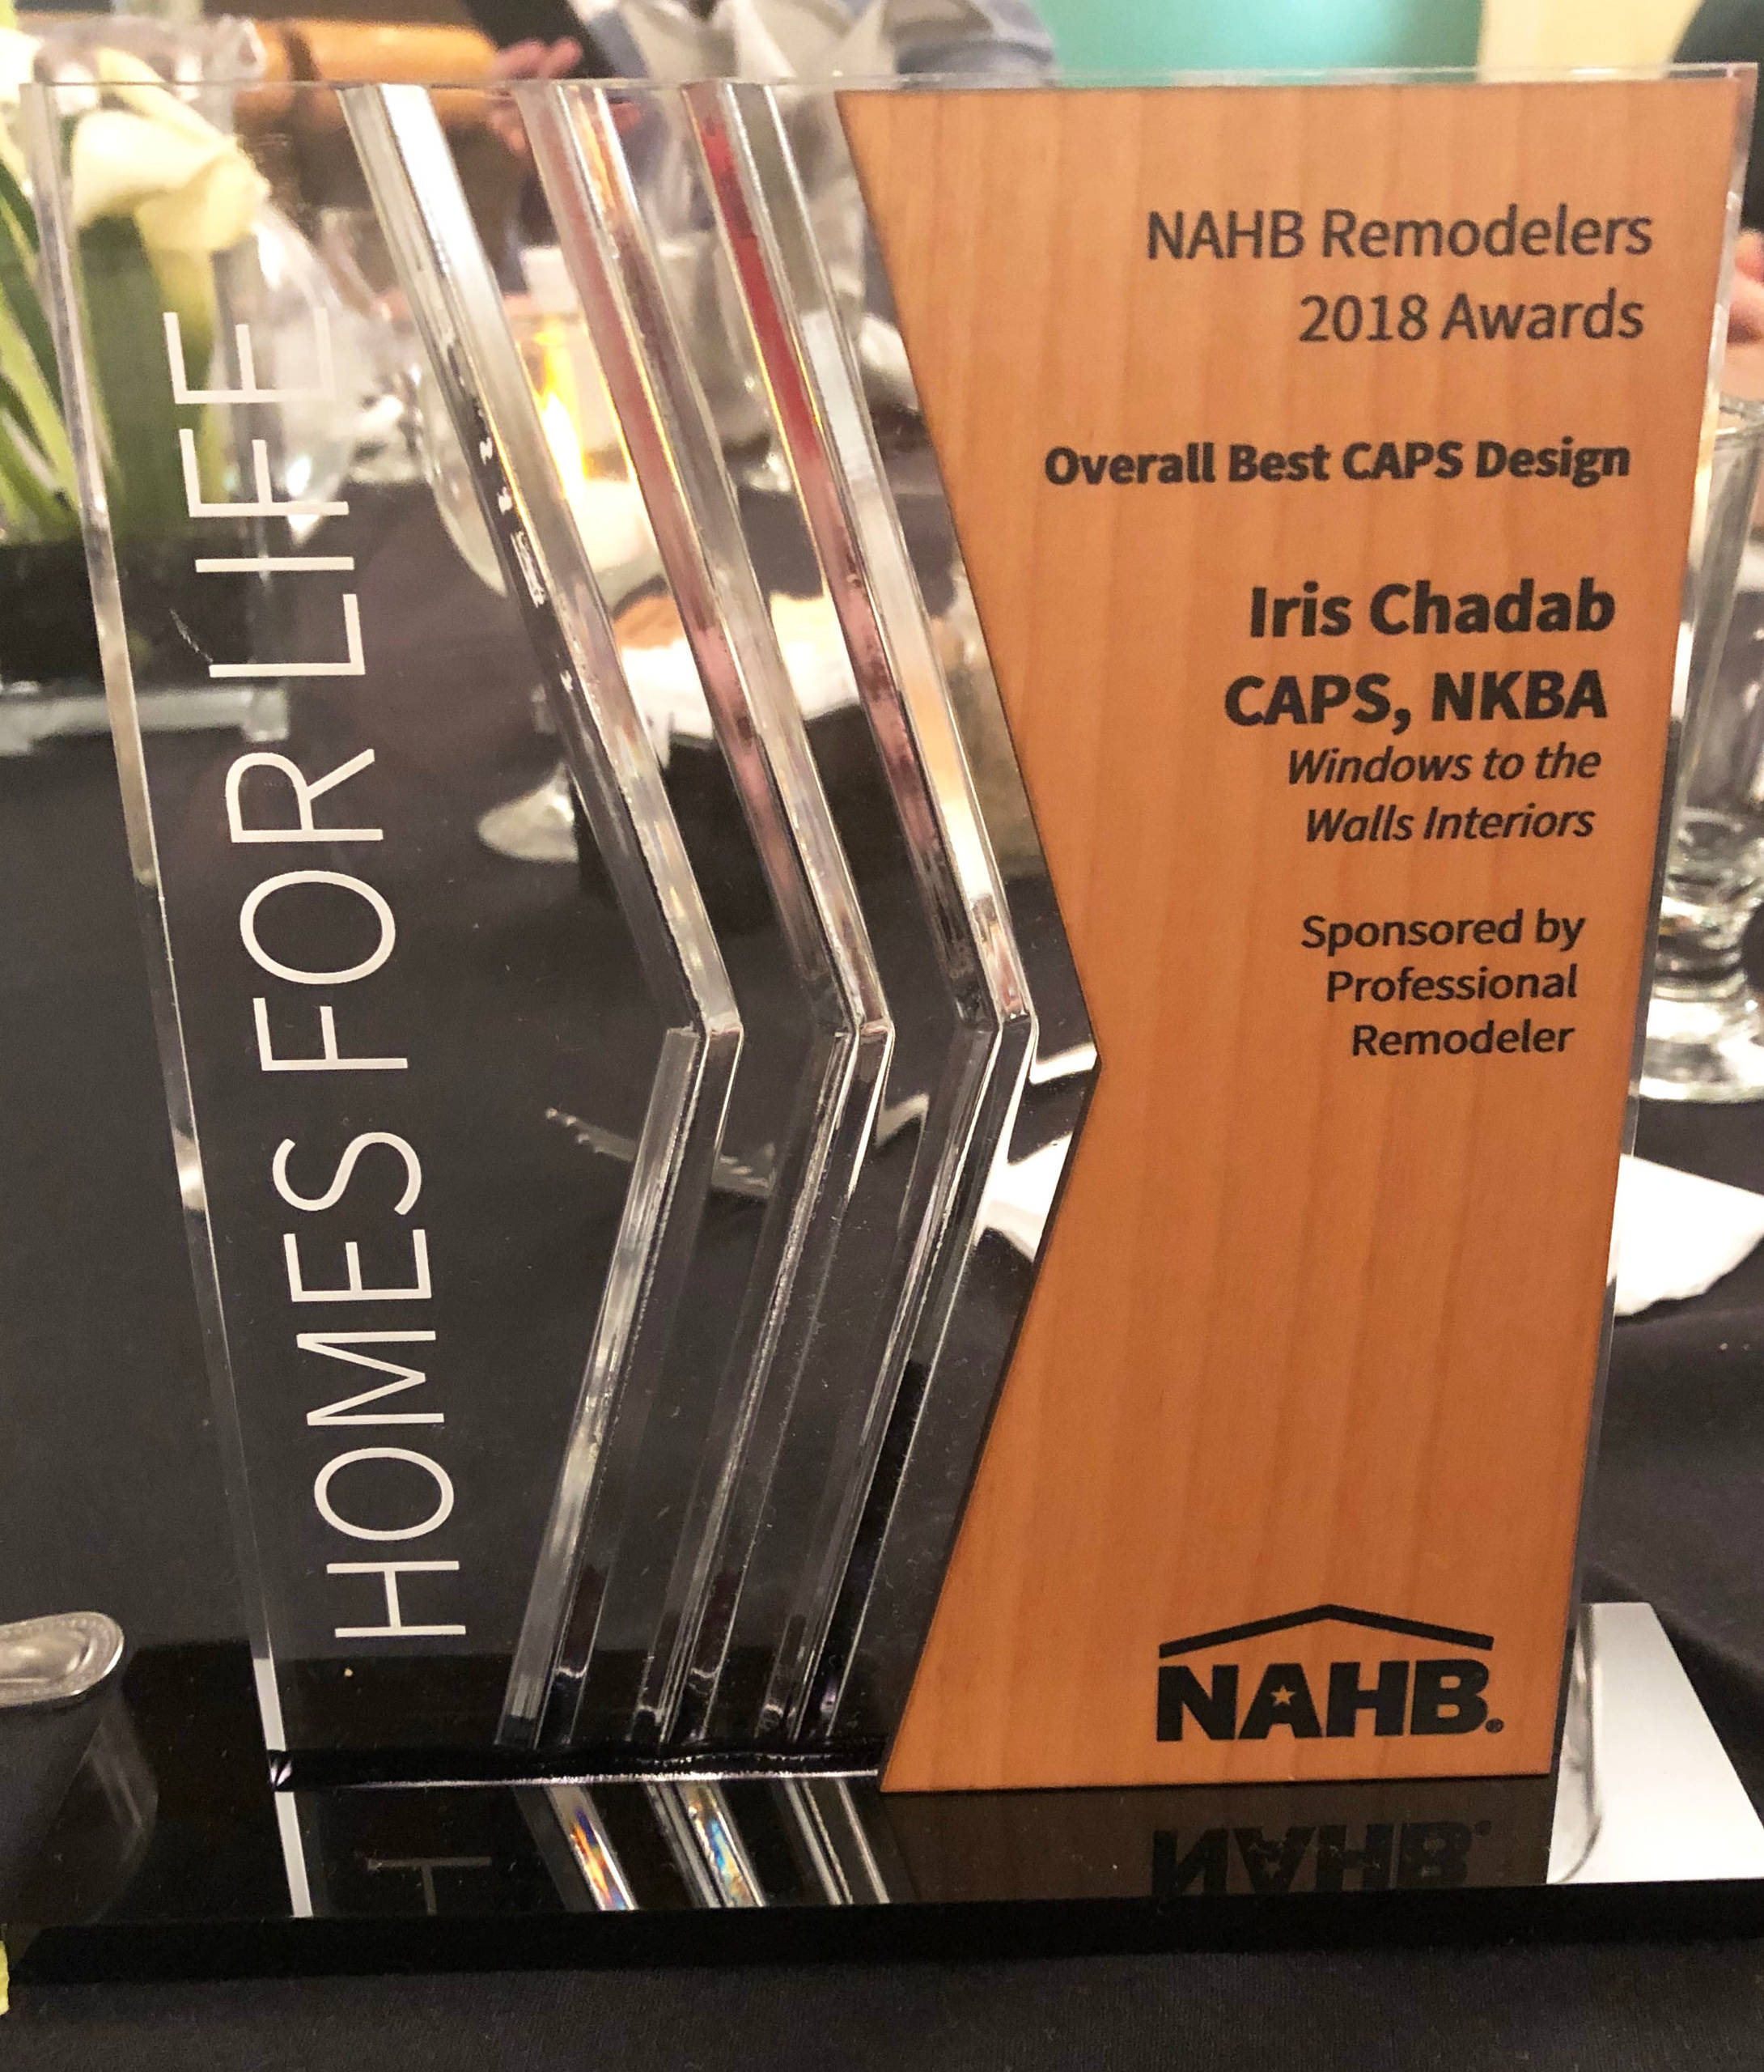 Homes for Life Award- Overall Best CAPS Design 2018